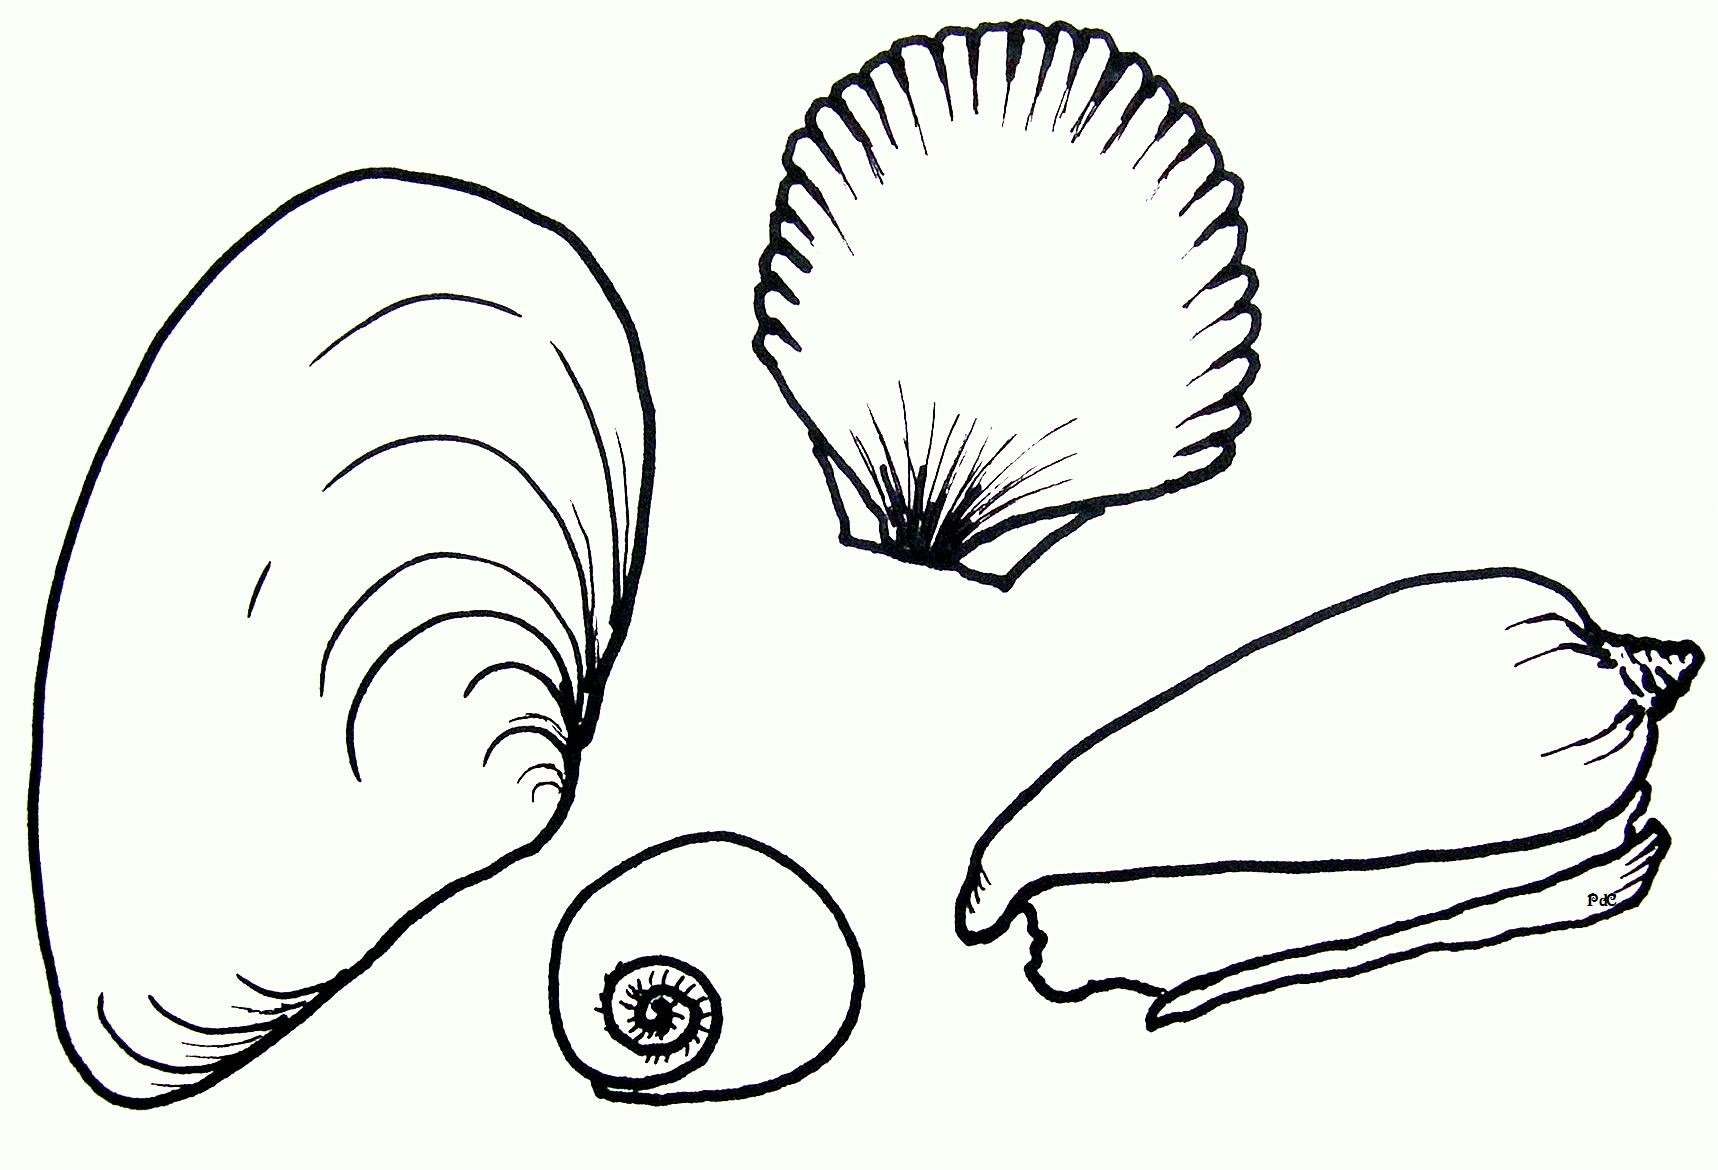 Seashell Drawing - ClipArt Best